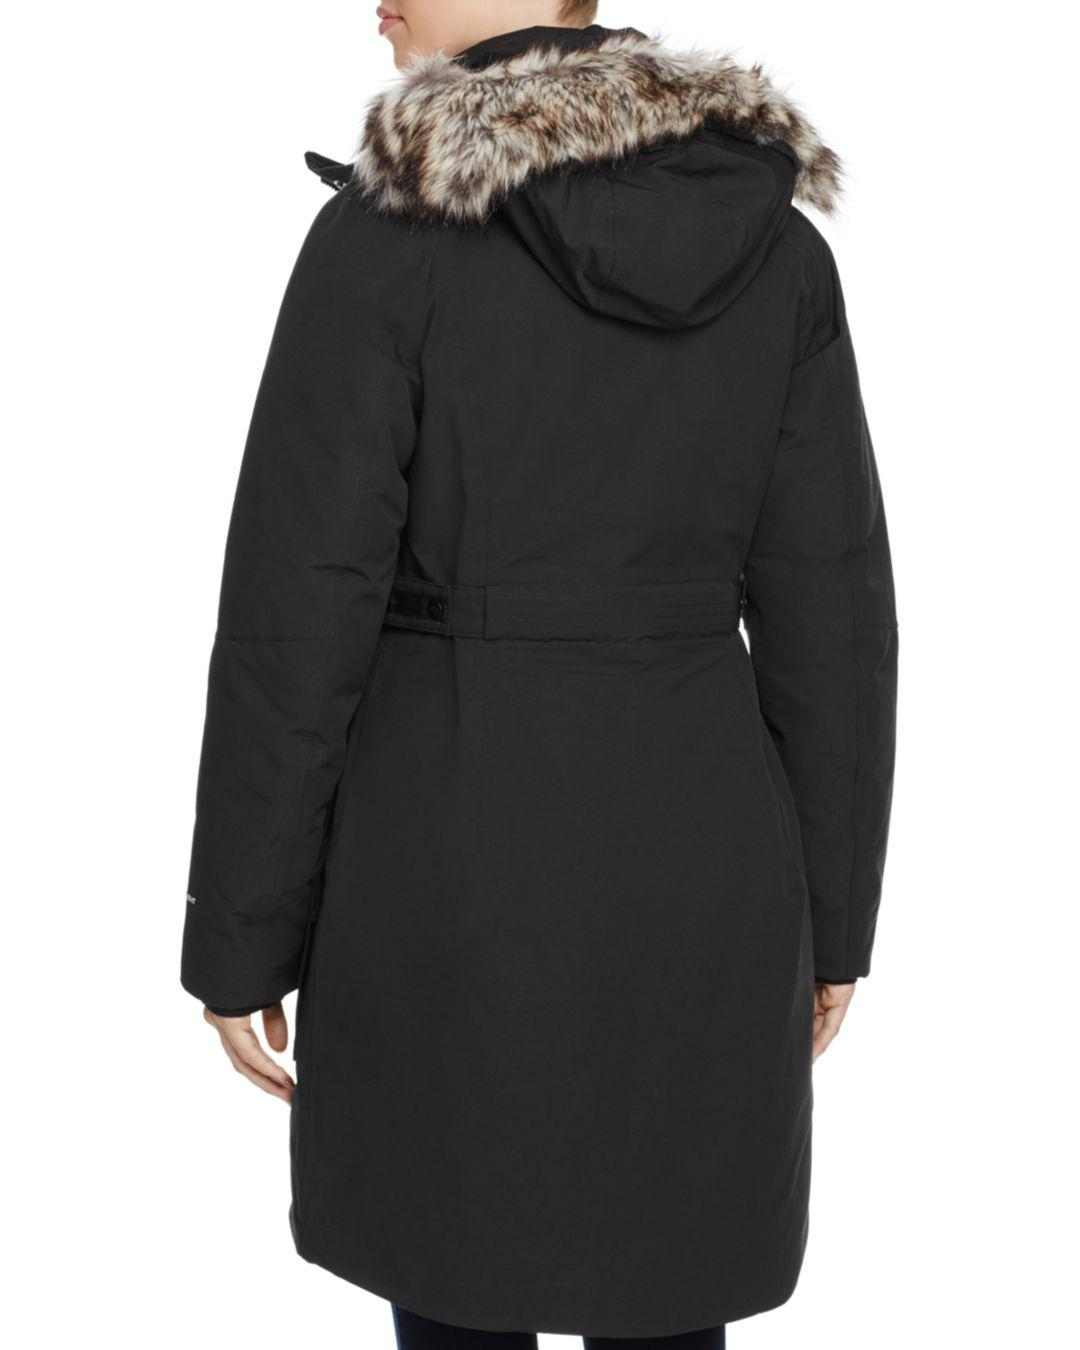 05f594ae96 Lyst - The North Face Outer Boro Faux Fur Trim Parka in Black